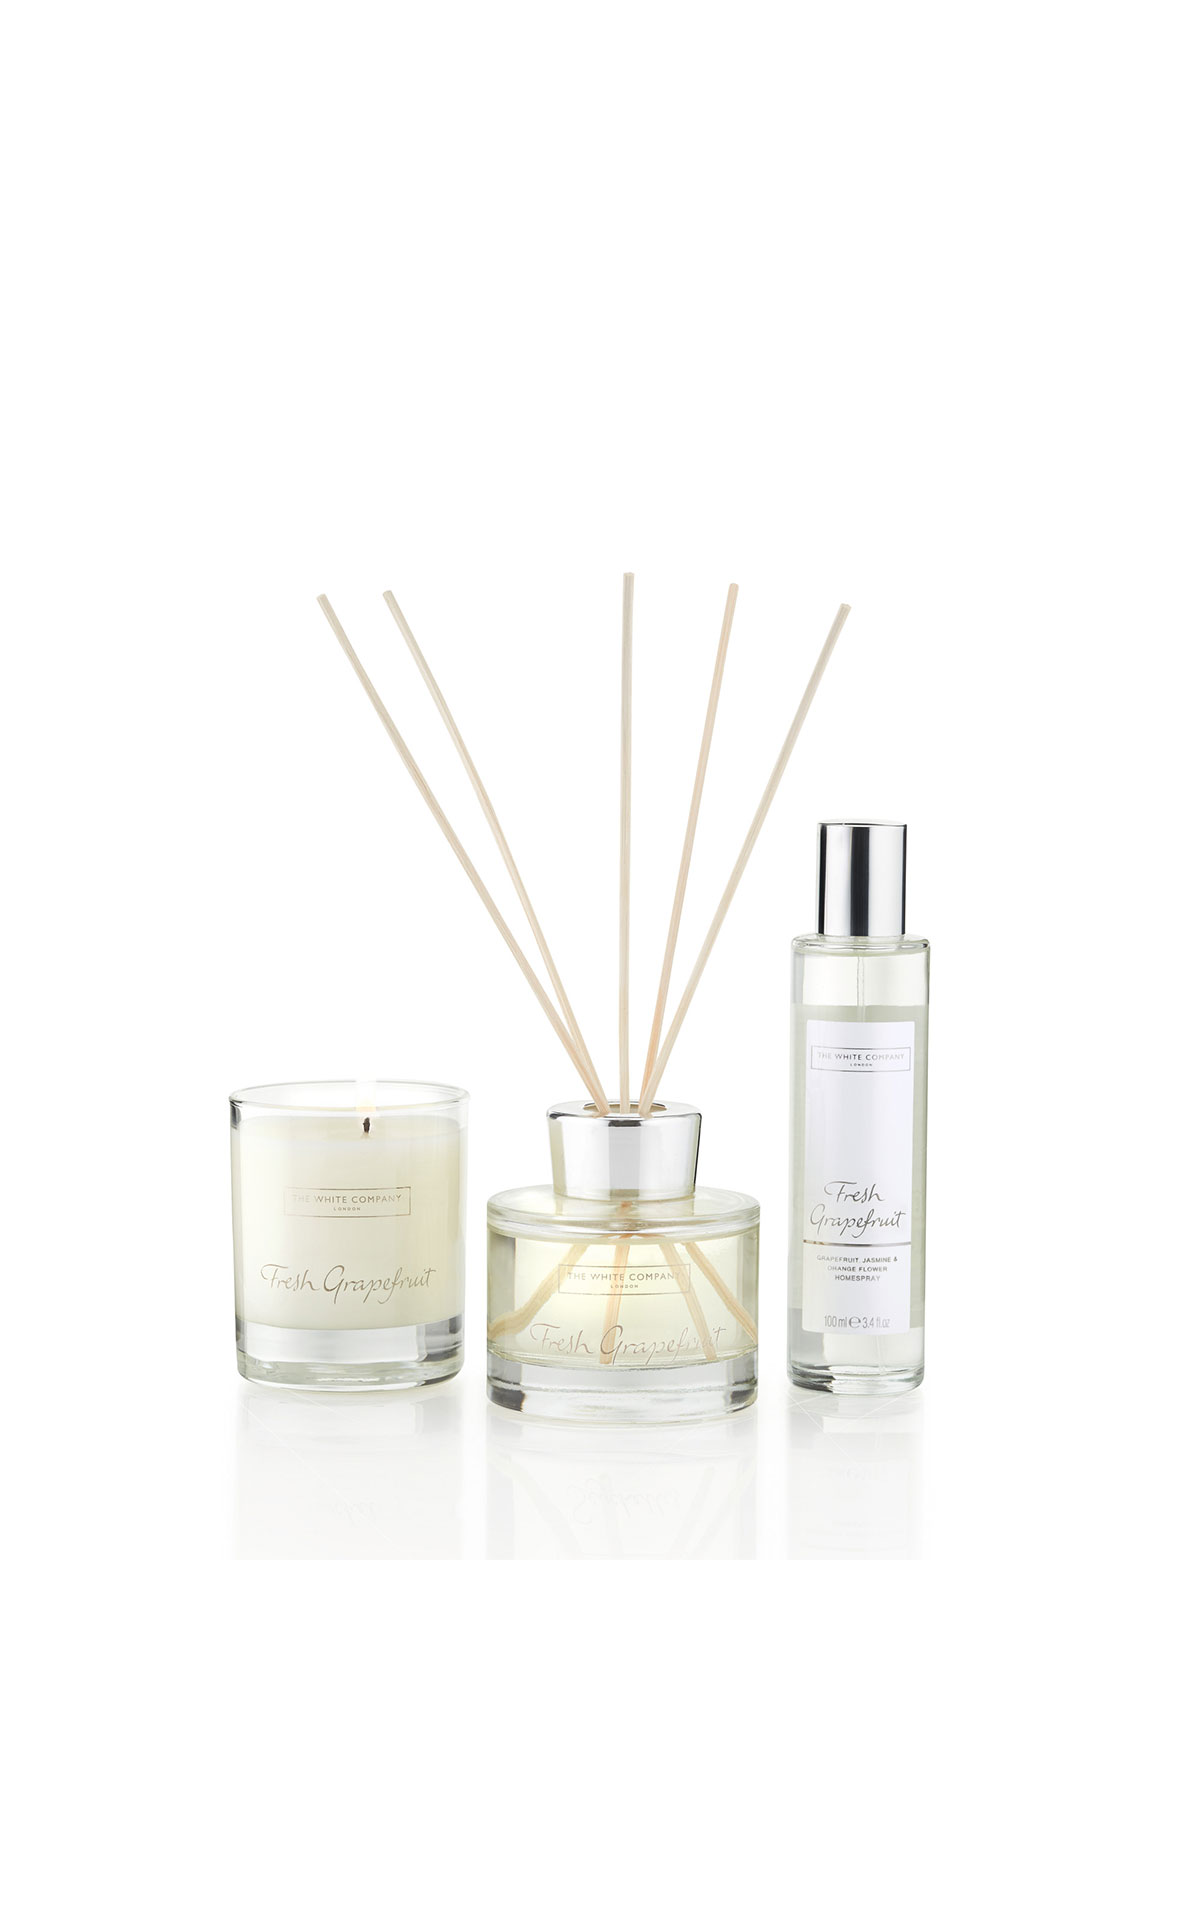 The White Company Fresh grapefruit diffuser from Bicester Village